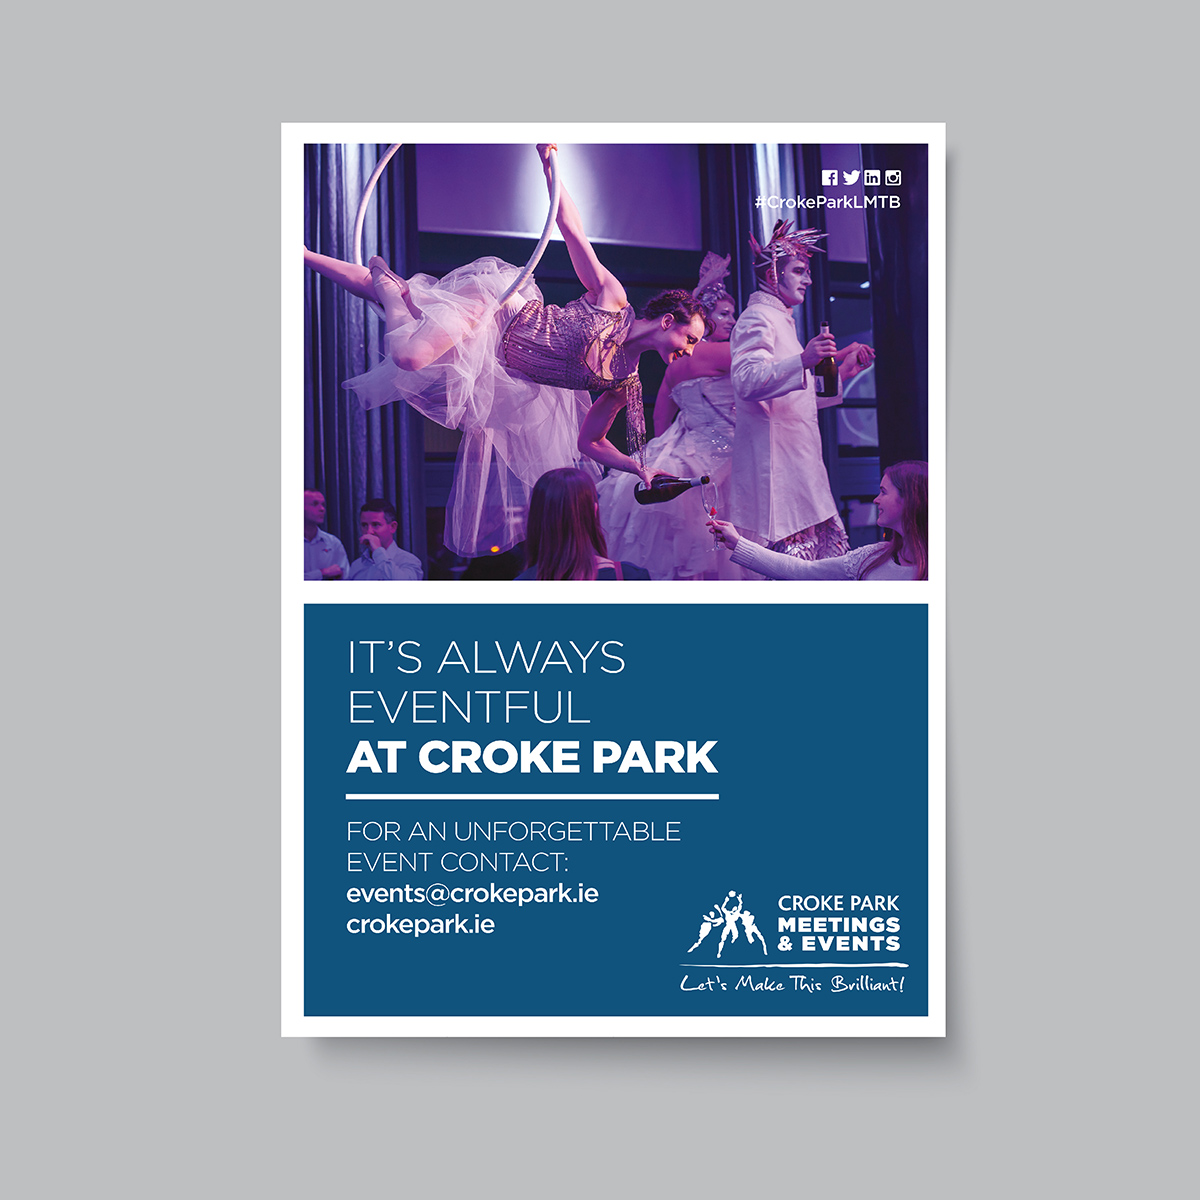 Croke Park Meeting and Events